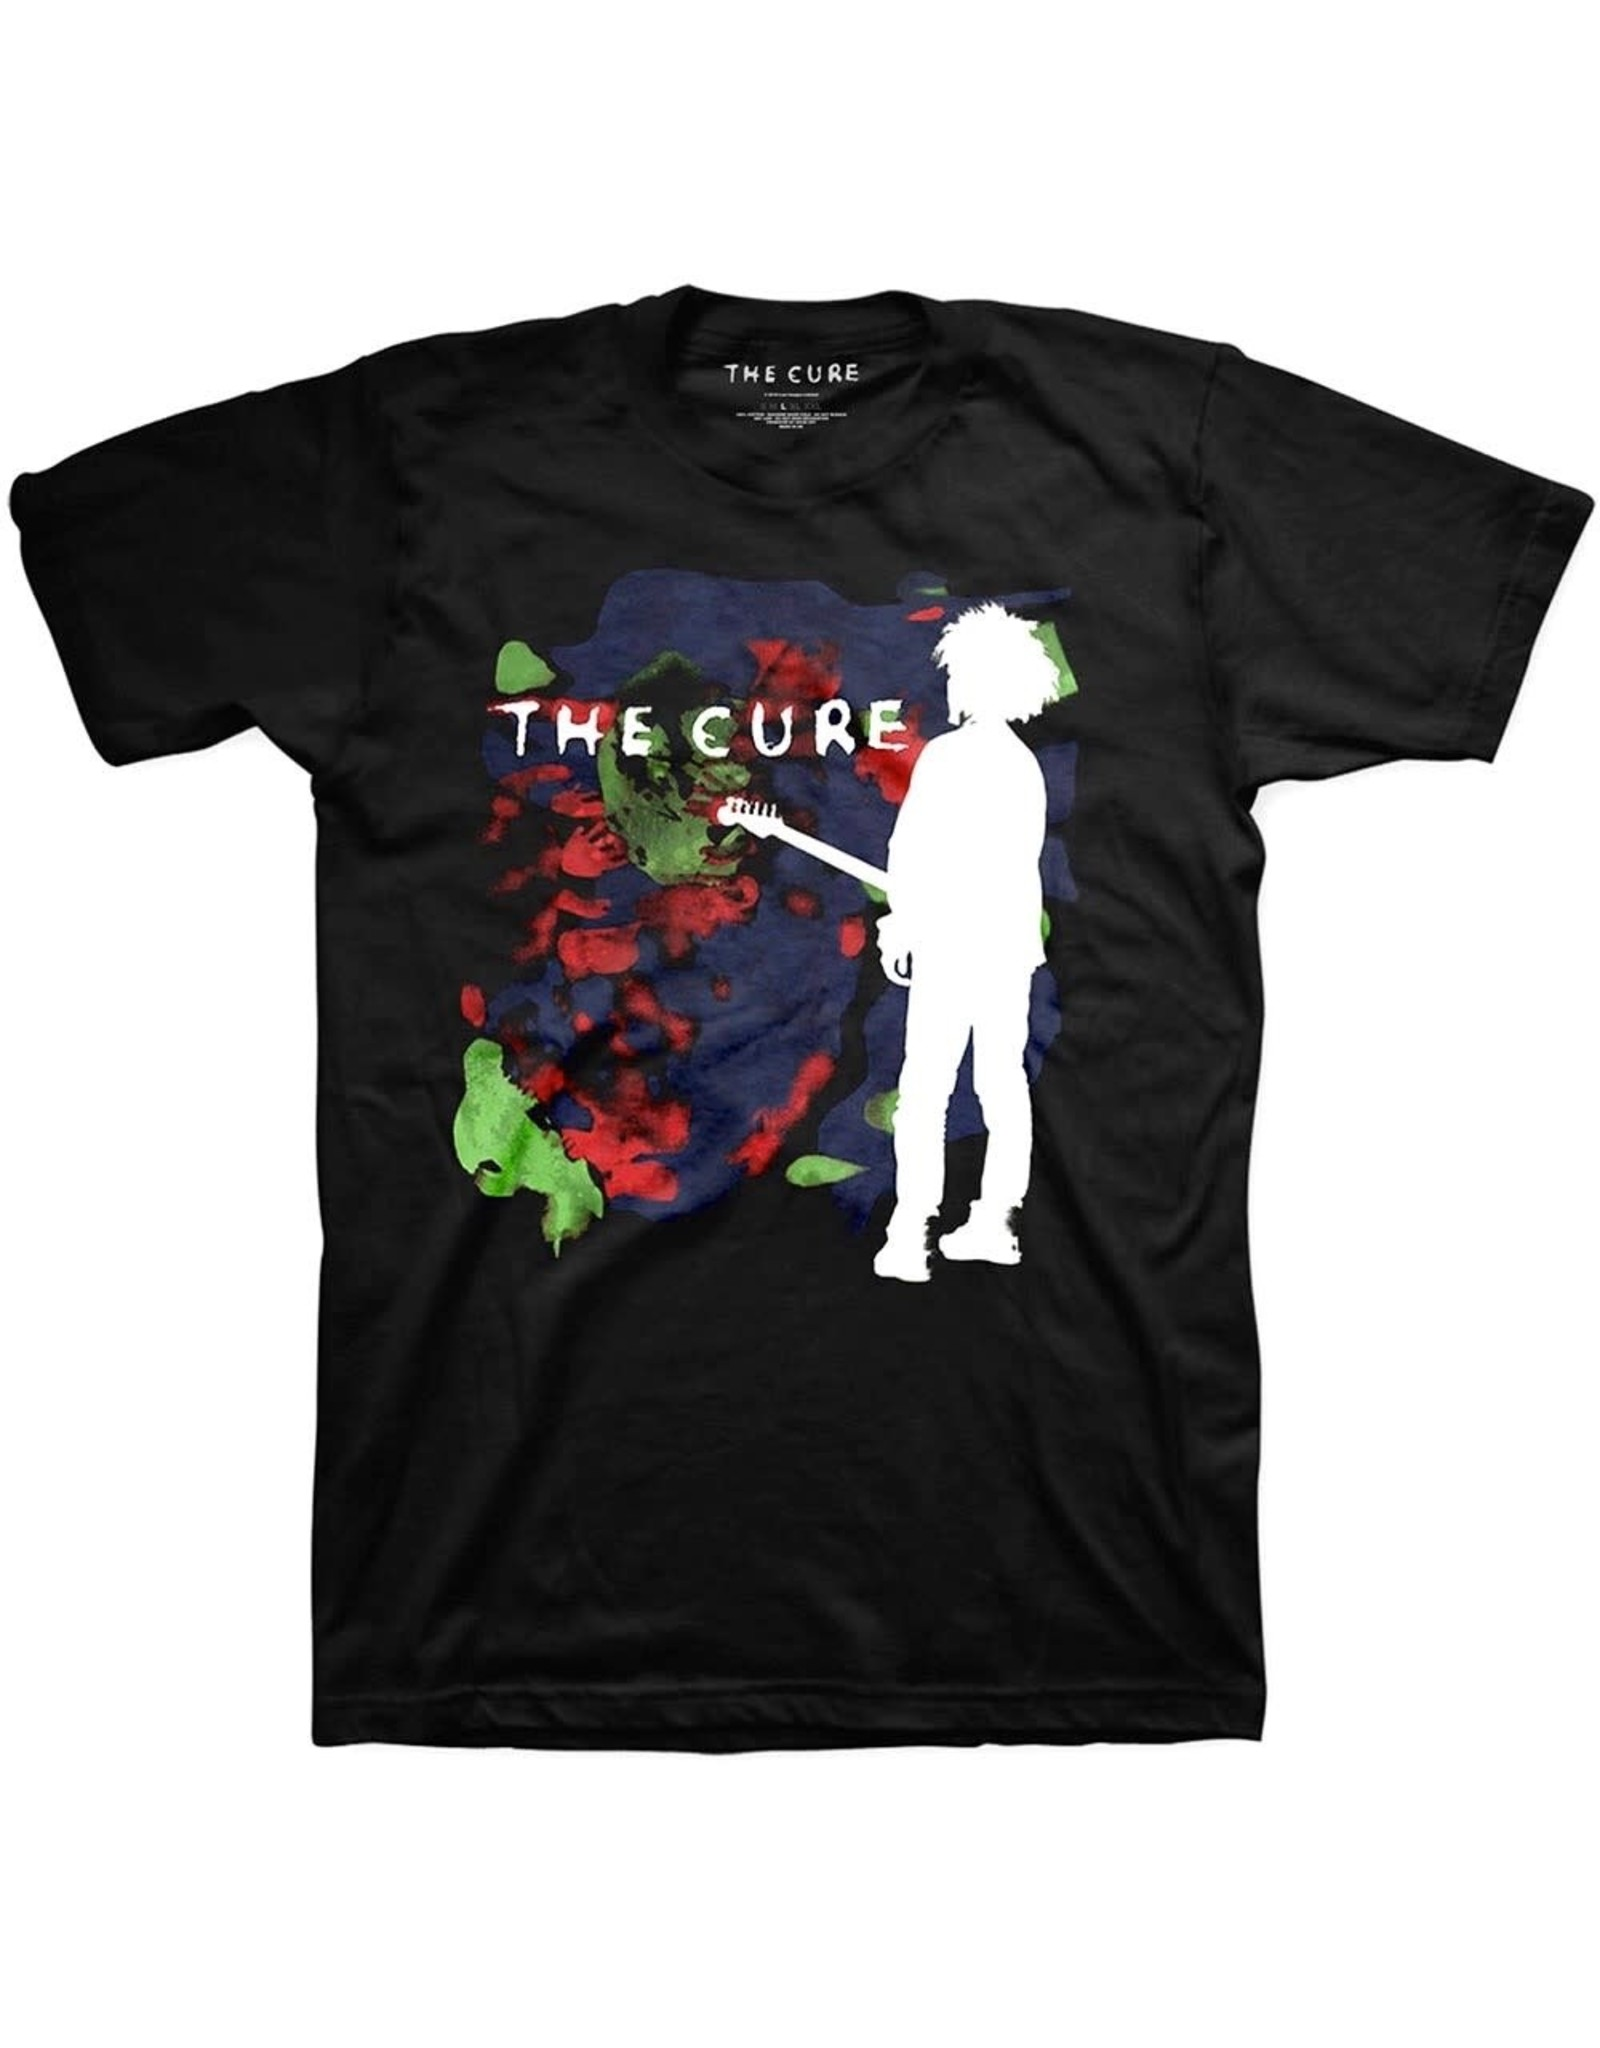 The Cure / Boys Don't Cry Tee